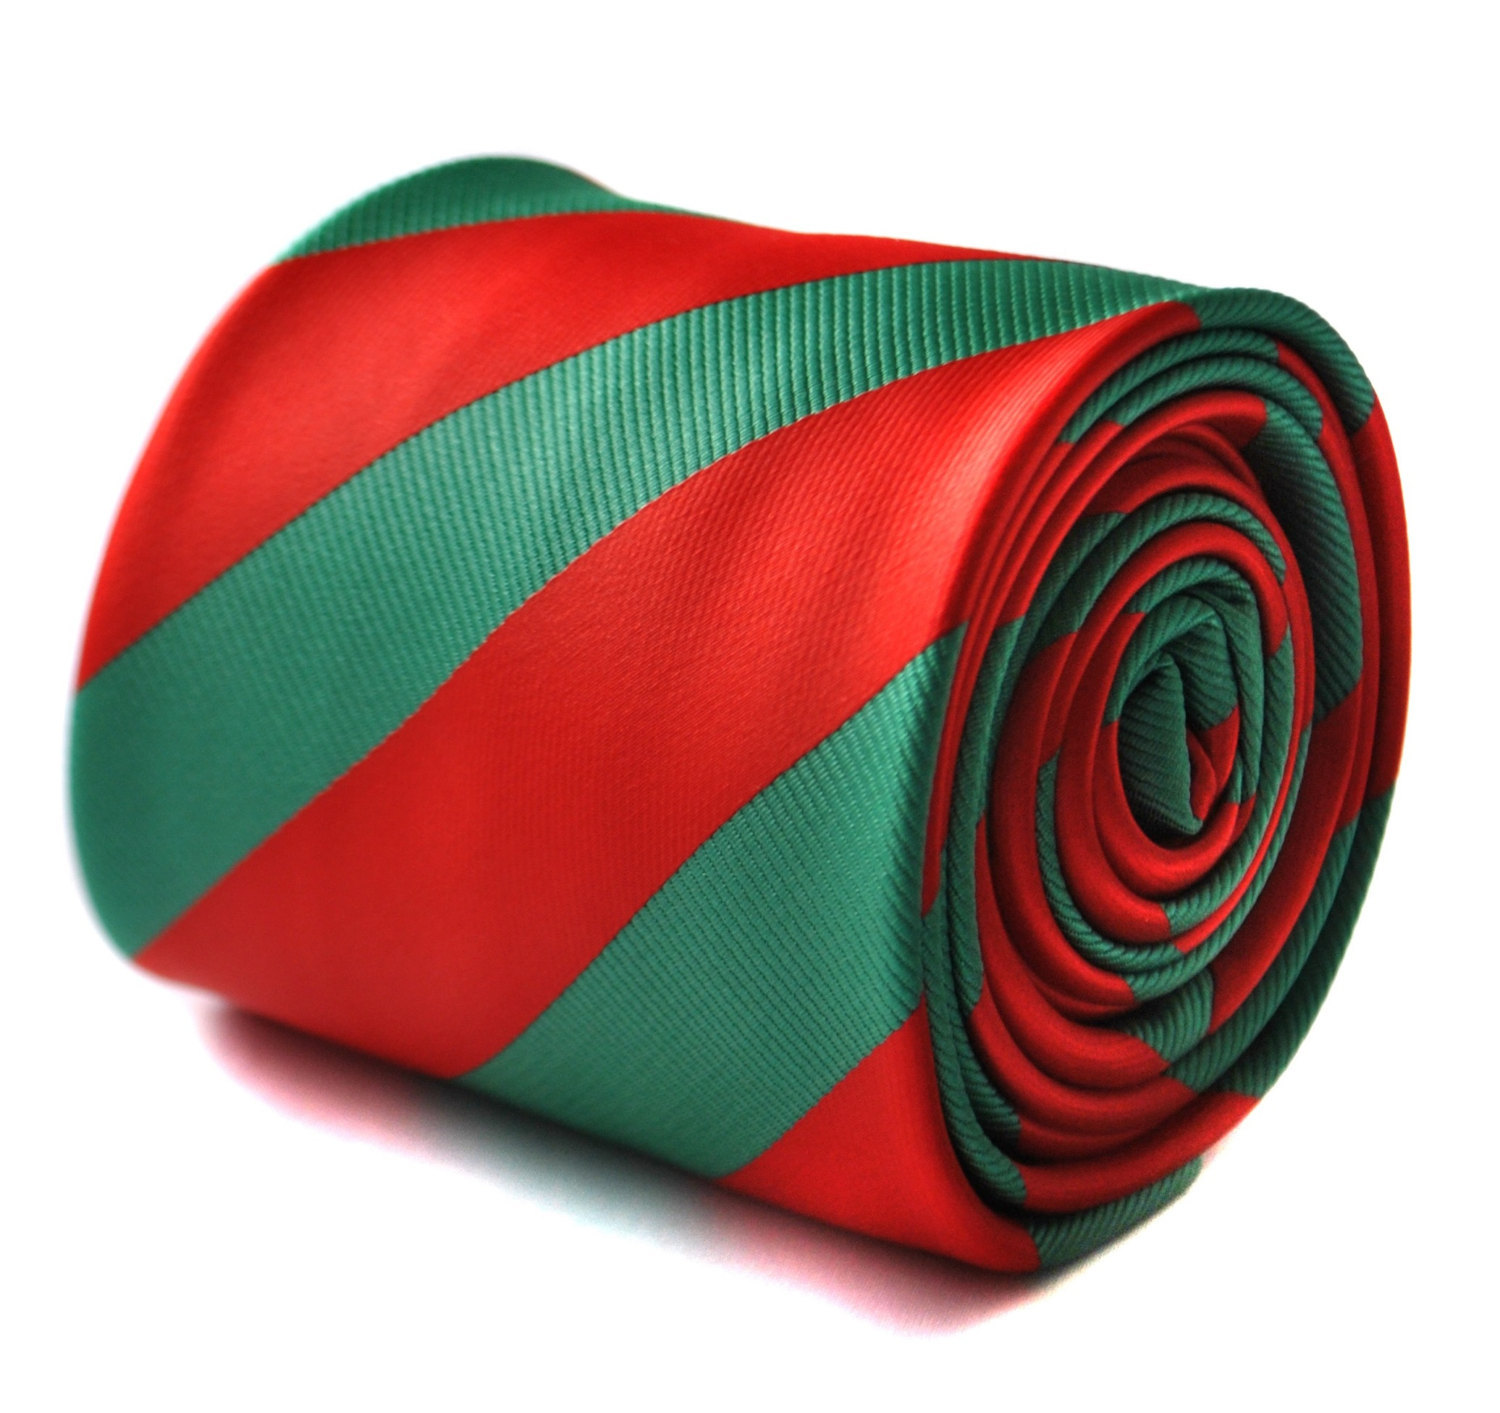 Red and dark green barber striped tie with floral design to the rear by Frederic